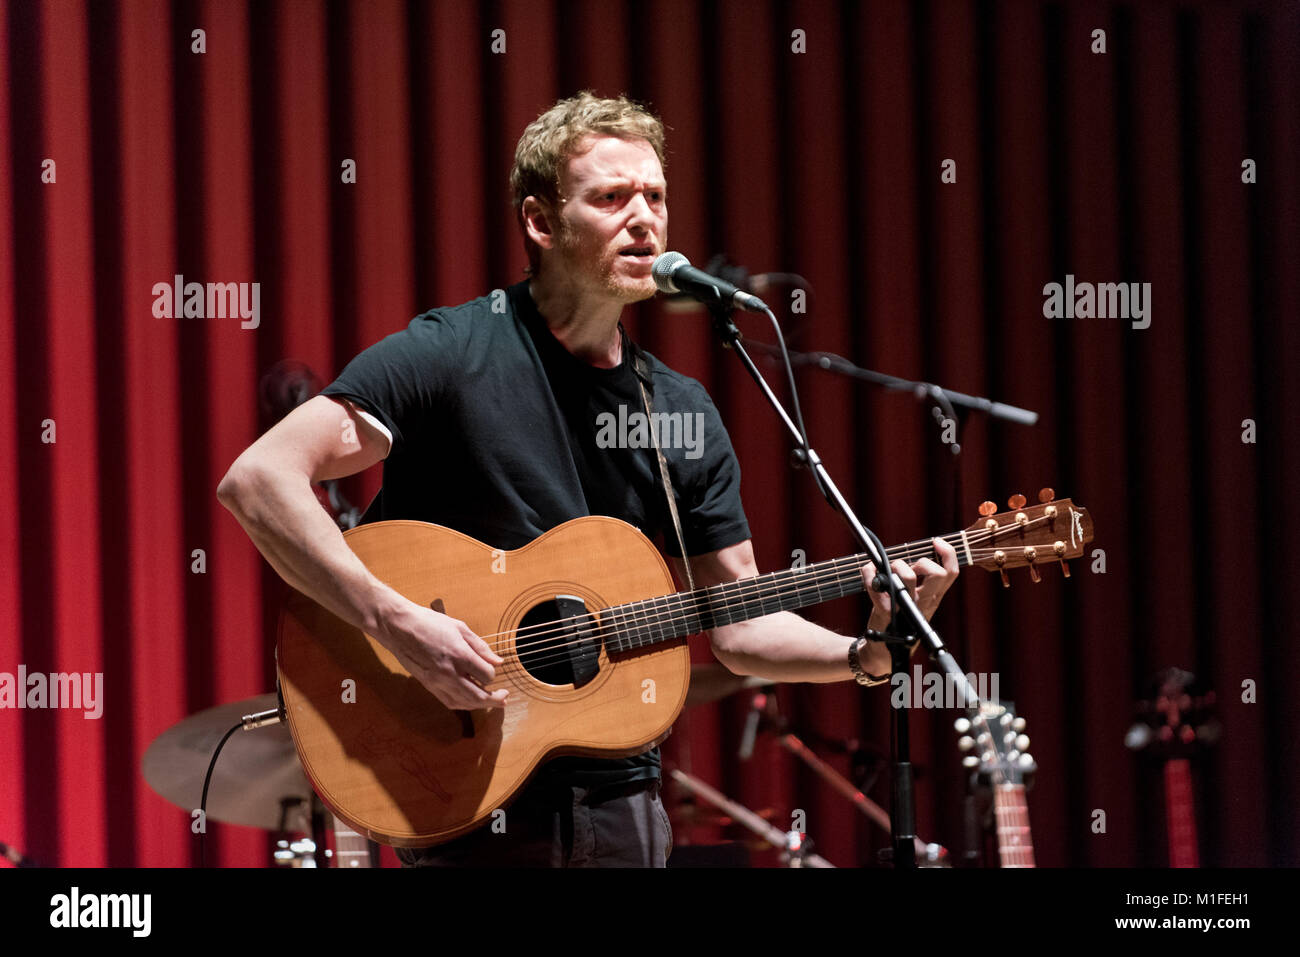 Manchester, UK. 29th Jan, 2018. Teddy Thompson in concert at The Stoller Hall, Manchester, UK, 29th January 2018. - Stock Image